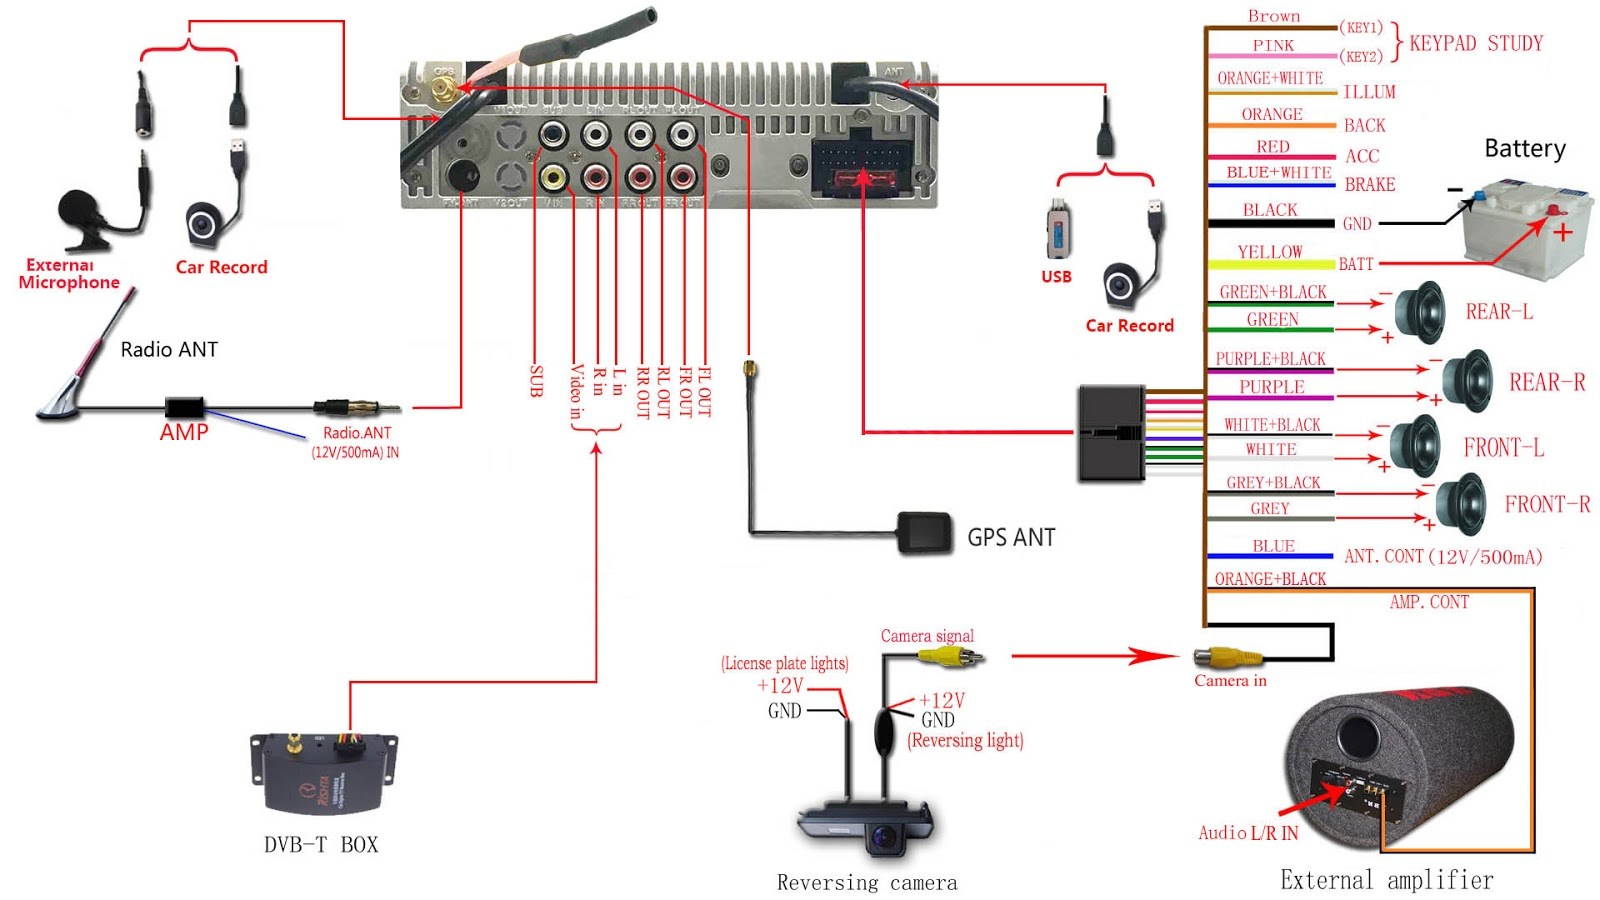 xtrons car stereo wiring diagram isuzu rodeo radio iso wire harness user manuals 2019 ebook library